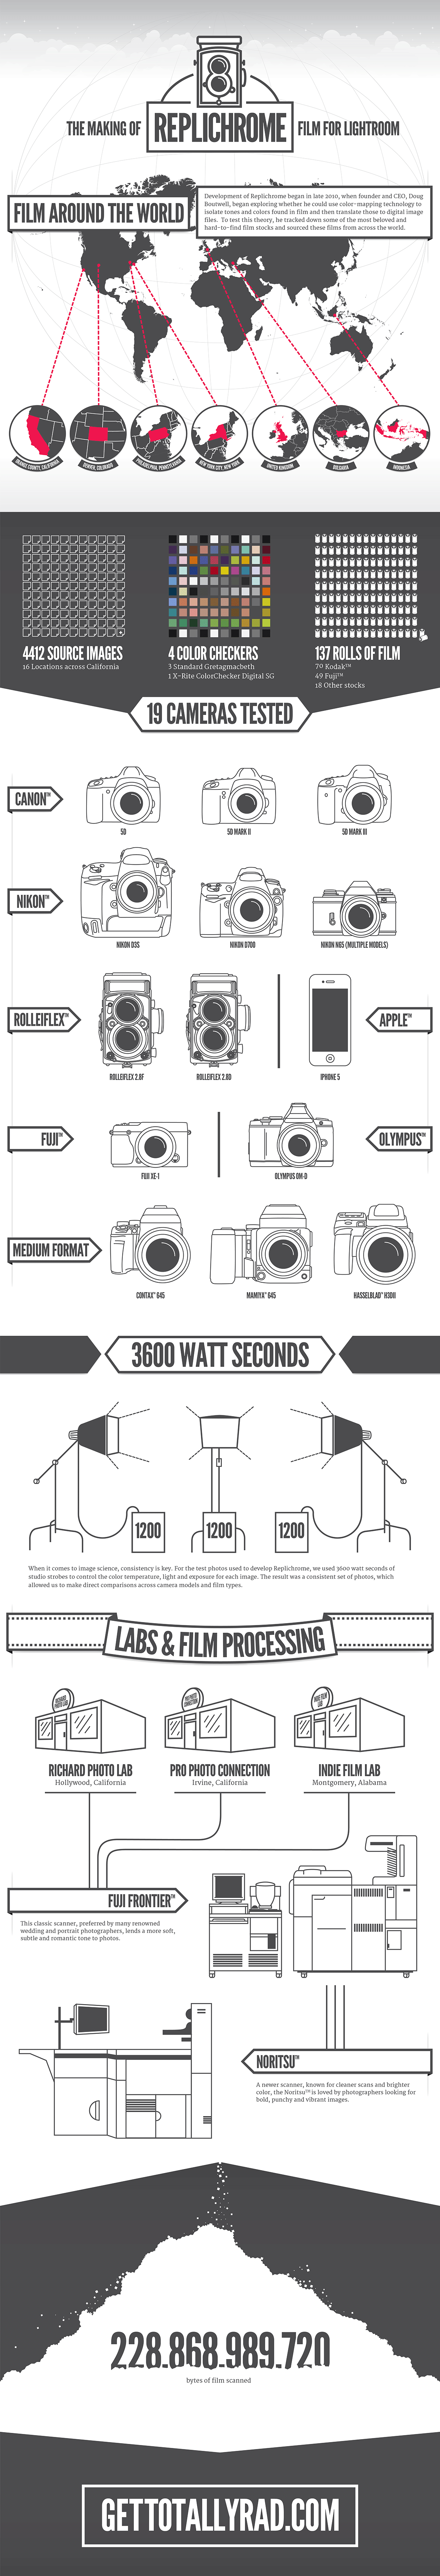 2018-Film-Presets-Infographic-01.png